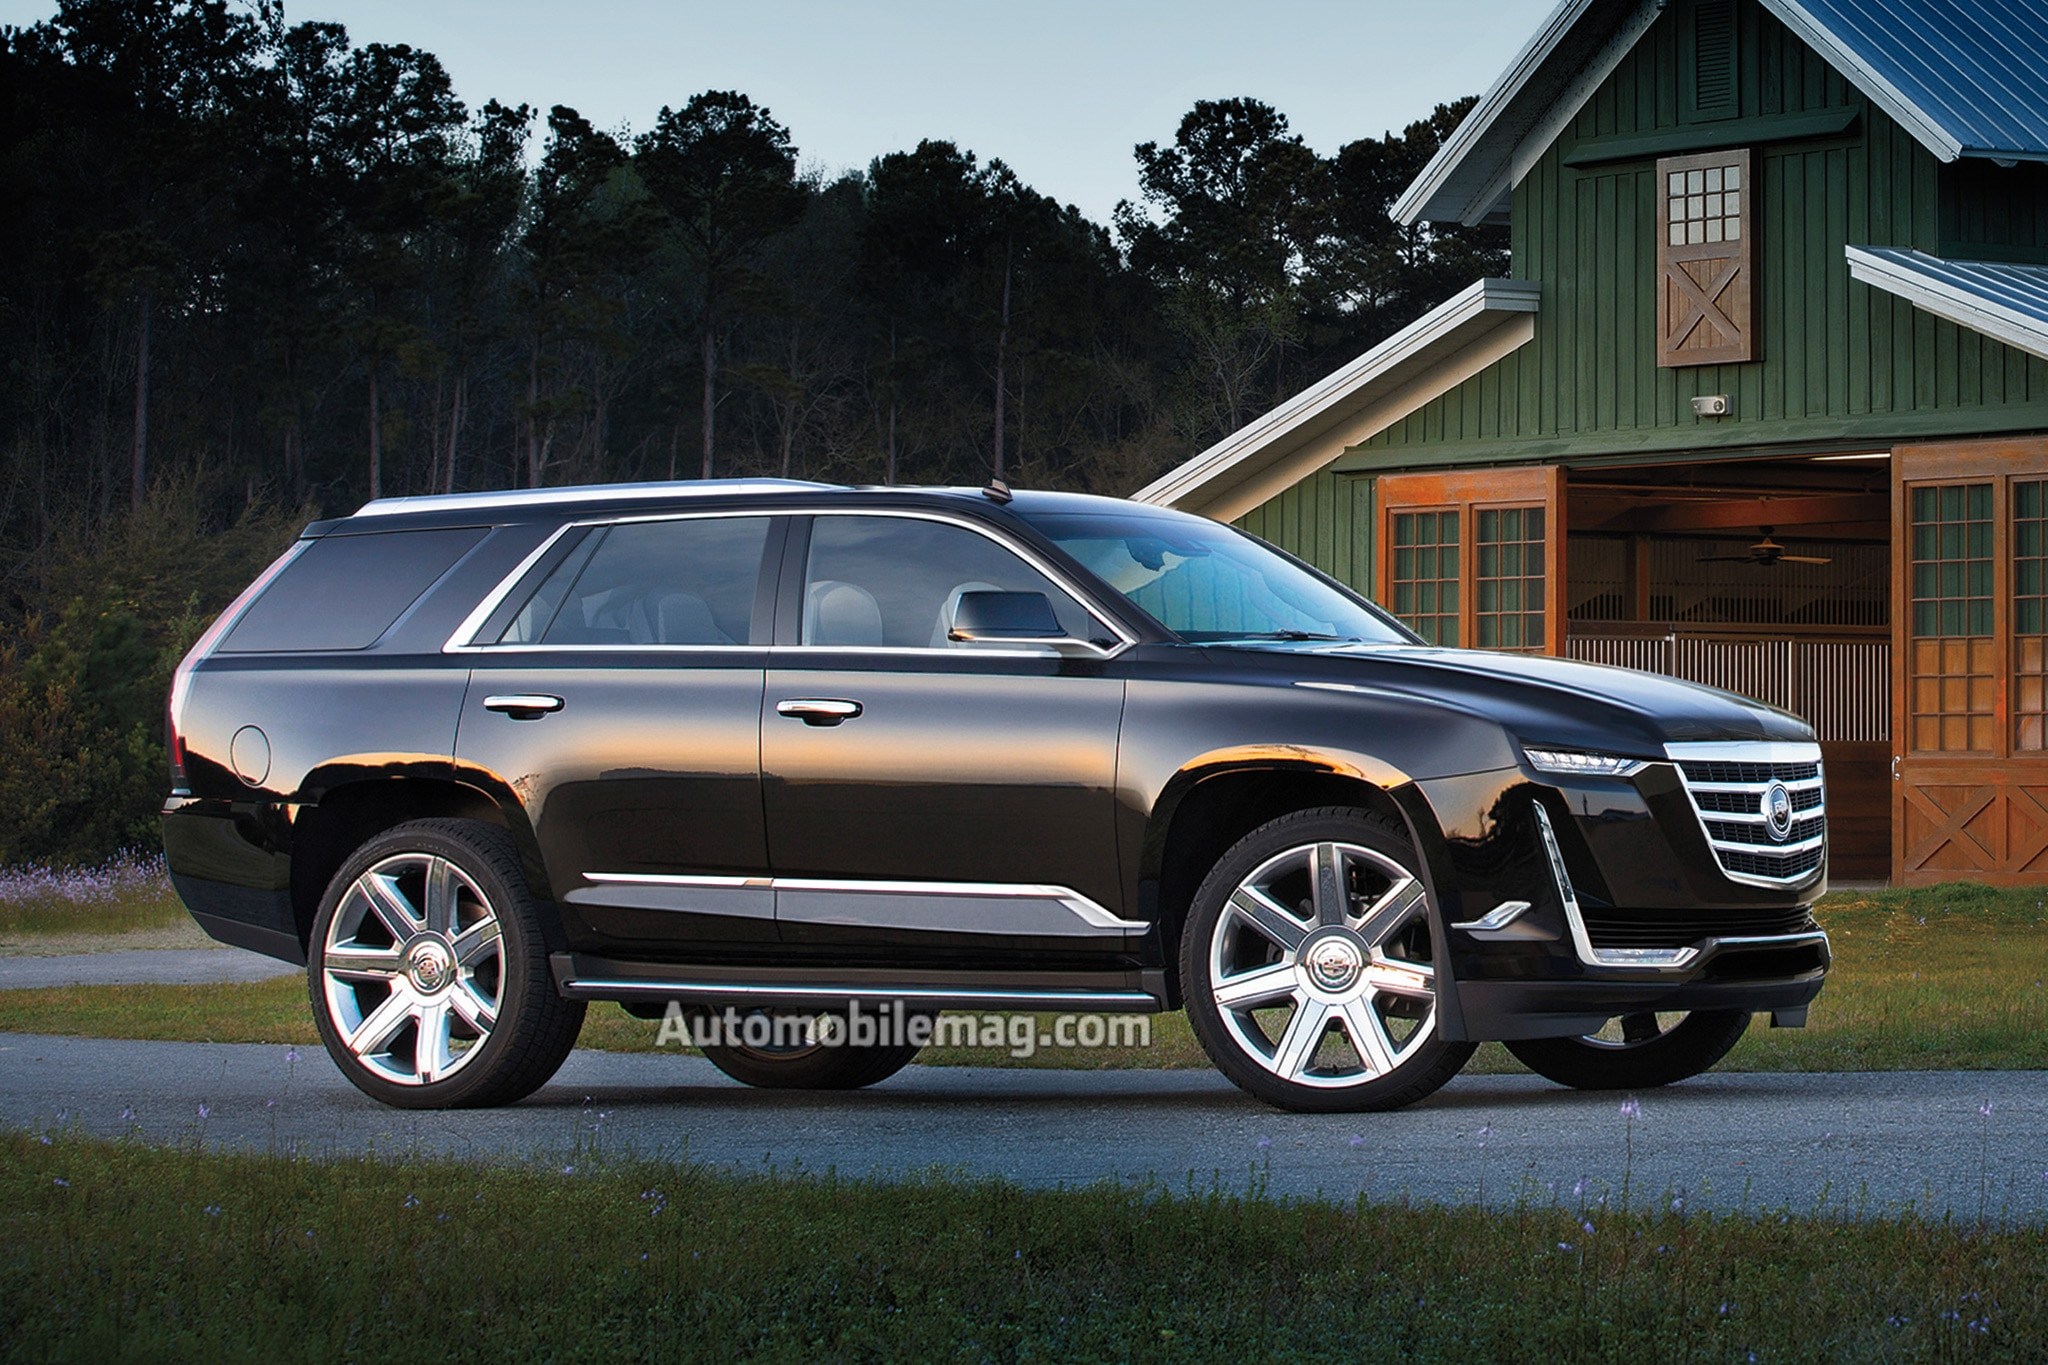 2020 Cadillac Escalade And Escalade Esv What To Expect Automobile